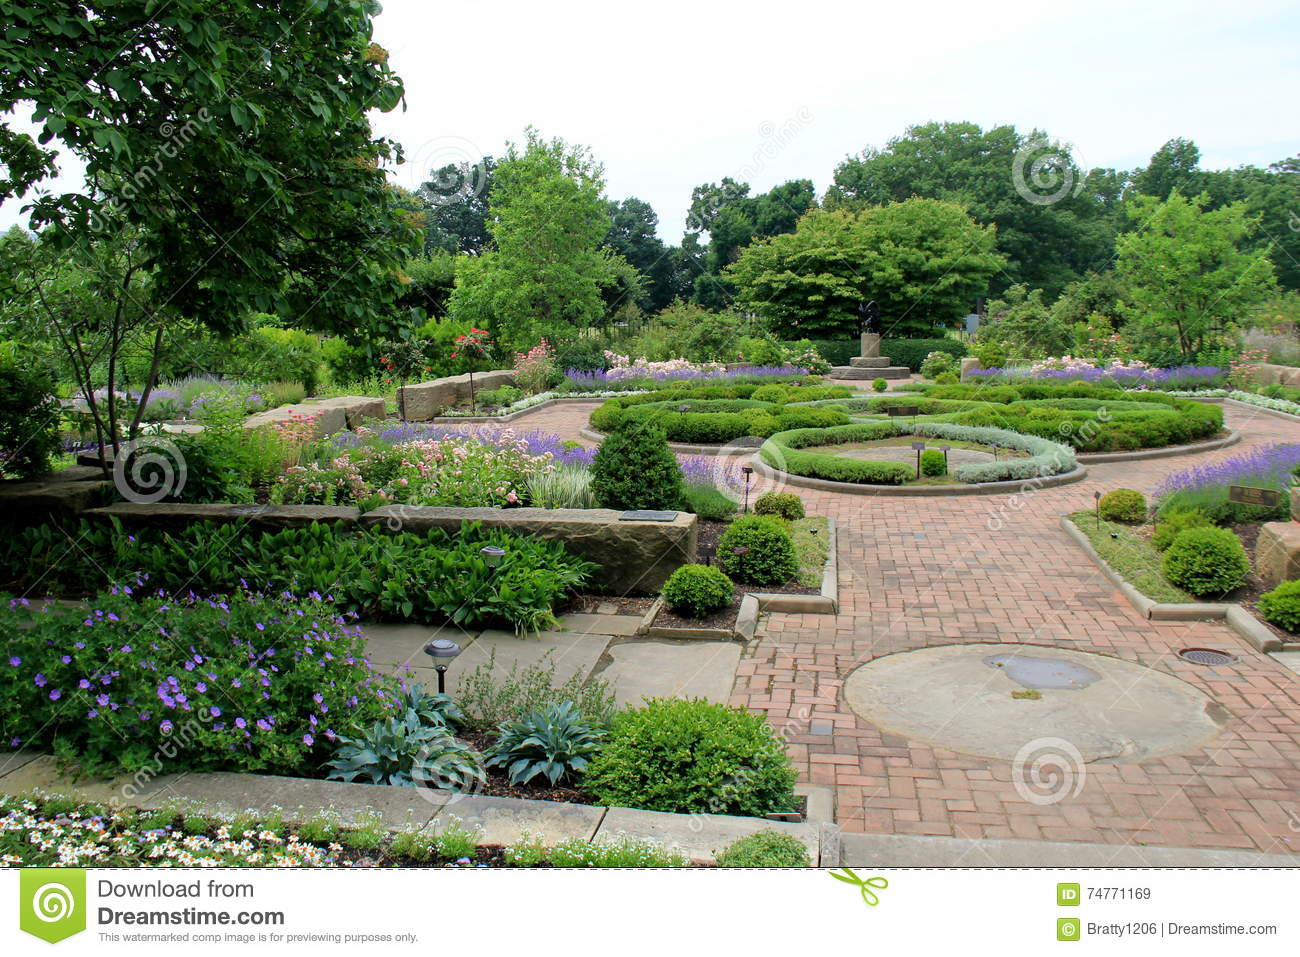 beautiful view of colorful garden with manicured lawns cleveland botanical gardens ohio 2016